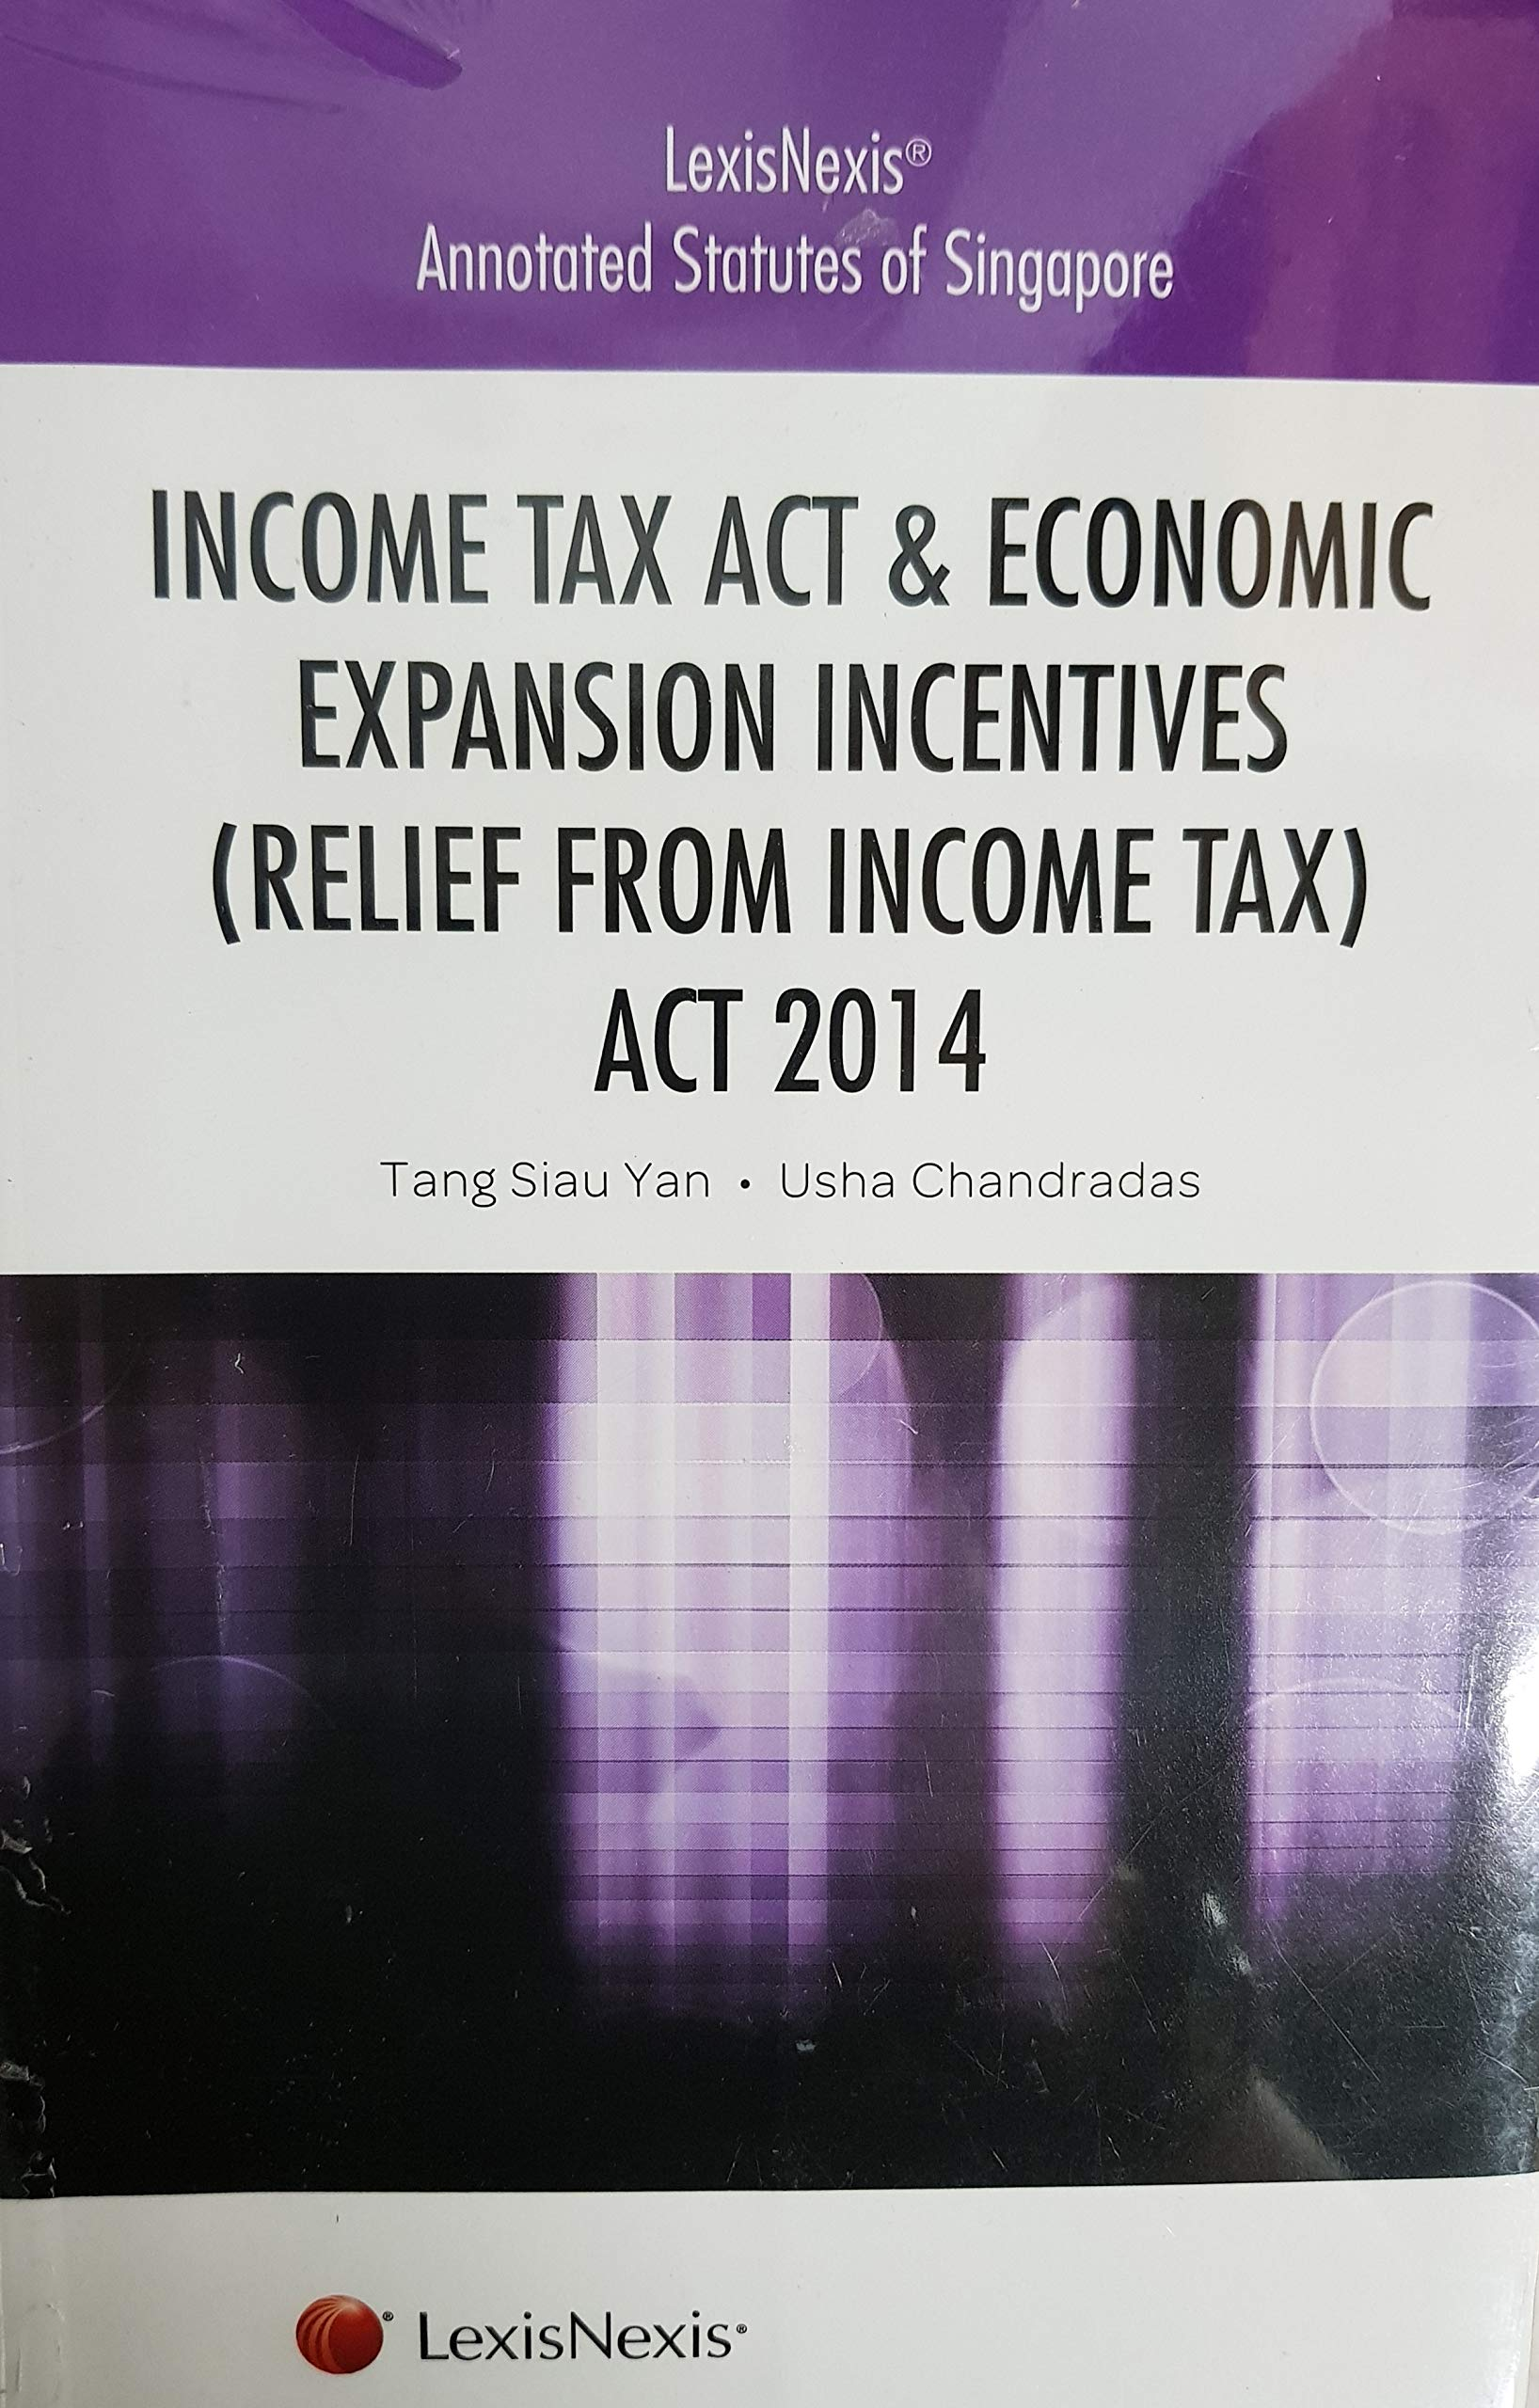 Income Tax Act & Economic Expansion Incentive (Relief from Income